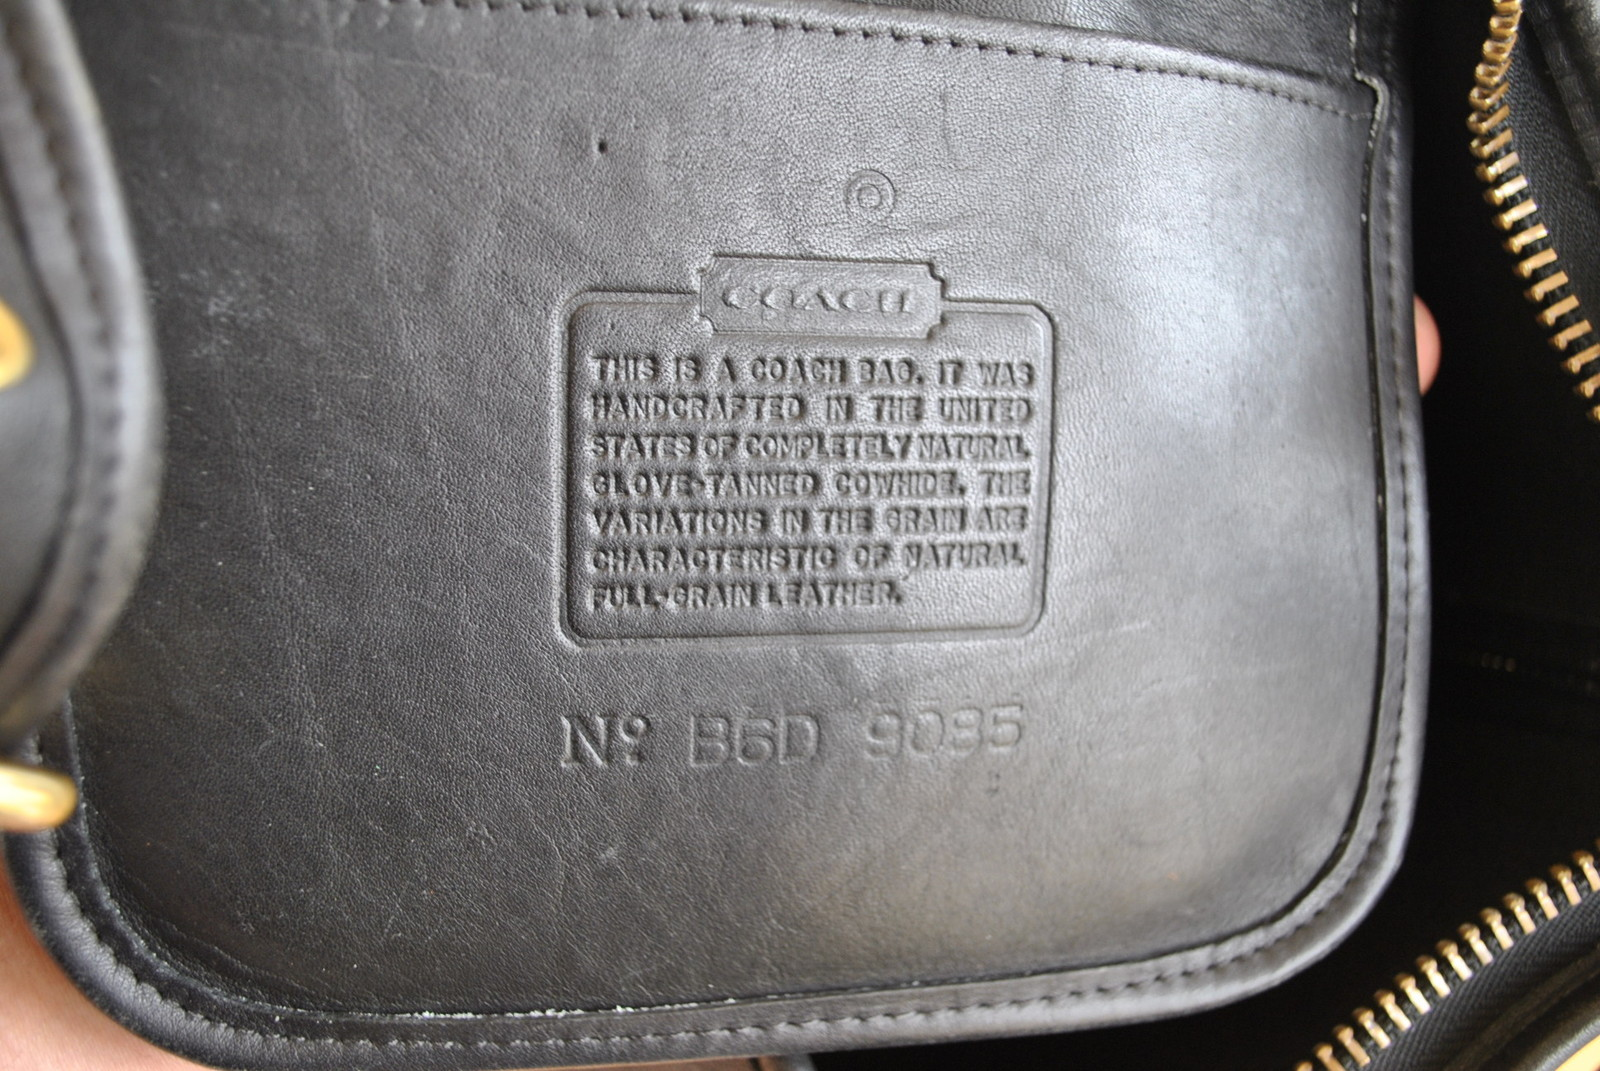 black and gray coach bag 7o03  Heres